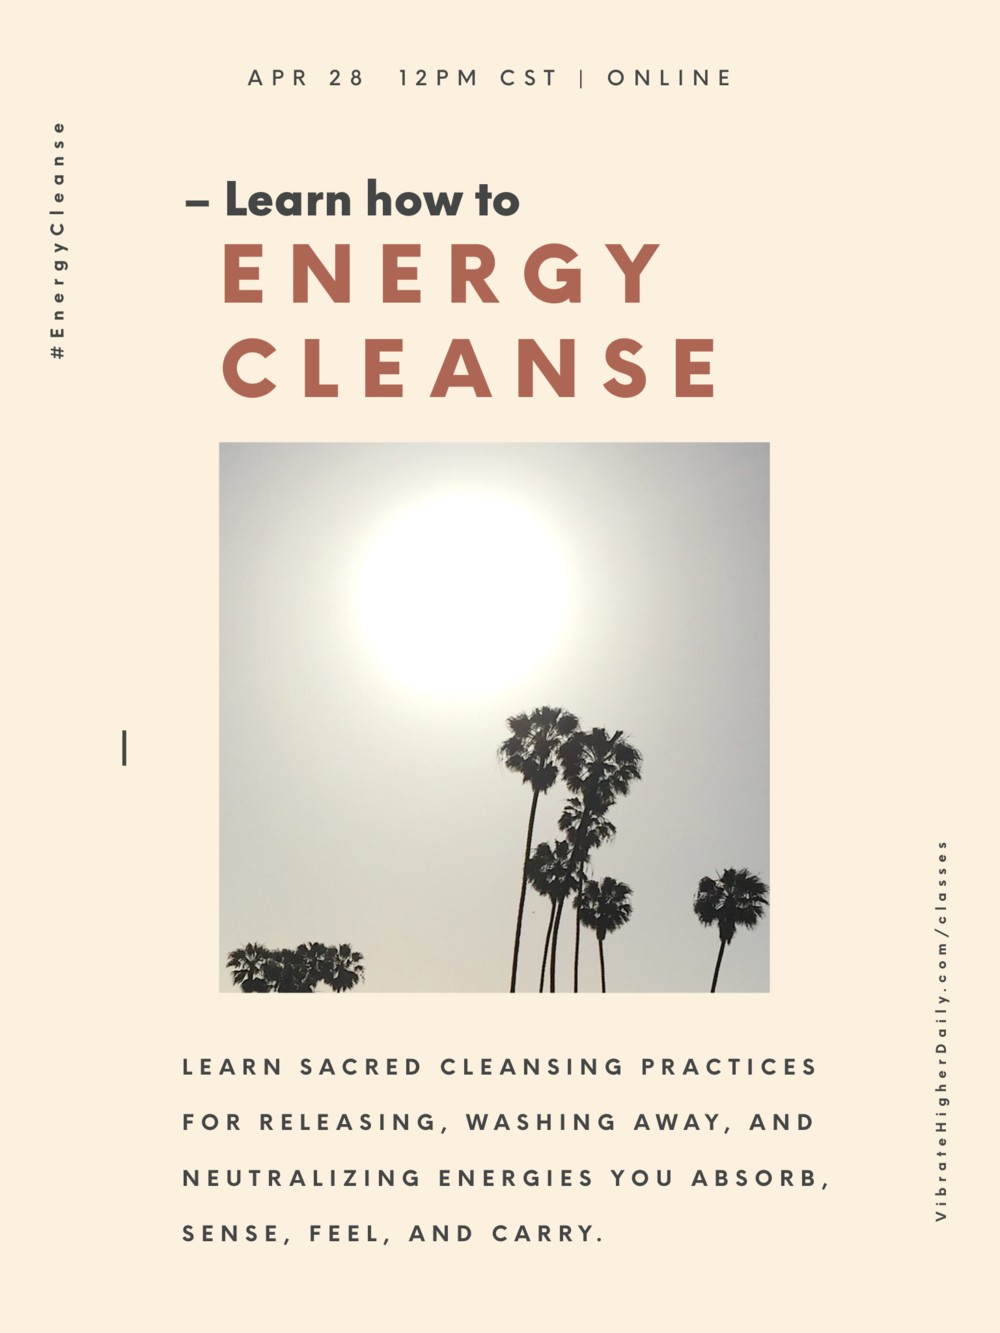 Energy CleanseAPR 28 12PM C.S.T. - Learn sacred cleansing practices for releasing, washing away, and neutralizing energies you absorb, sense, feel, and carry.